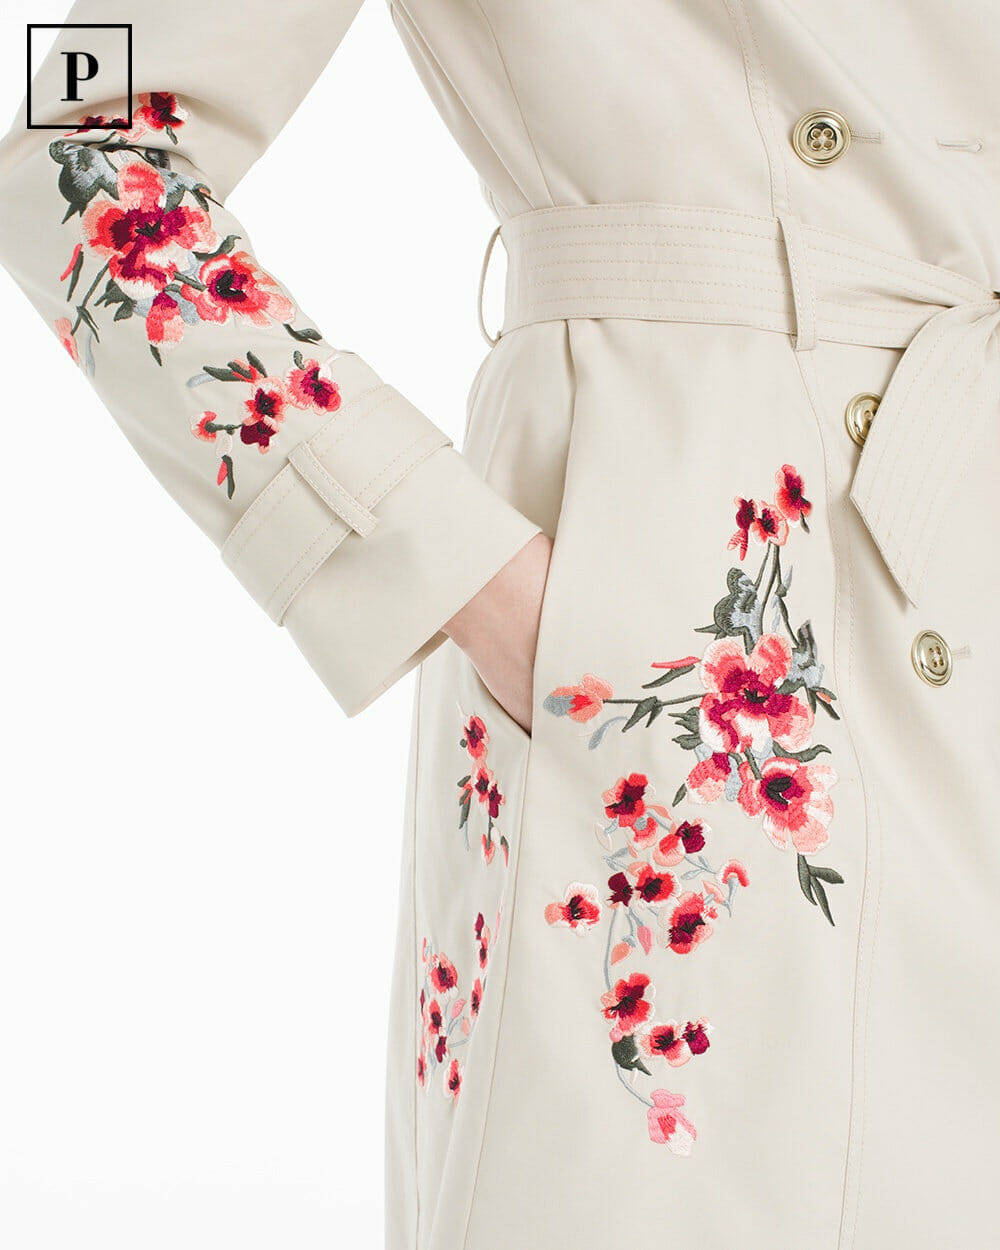 The rise of floral fashion embroidery and how to do it